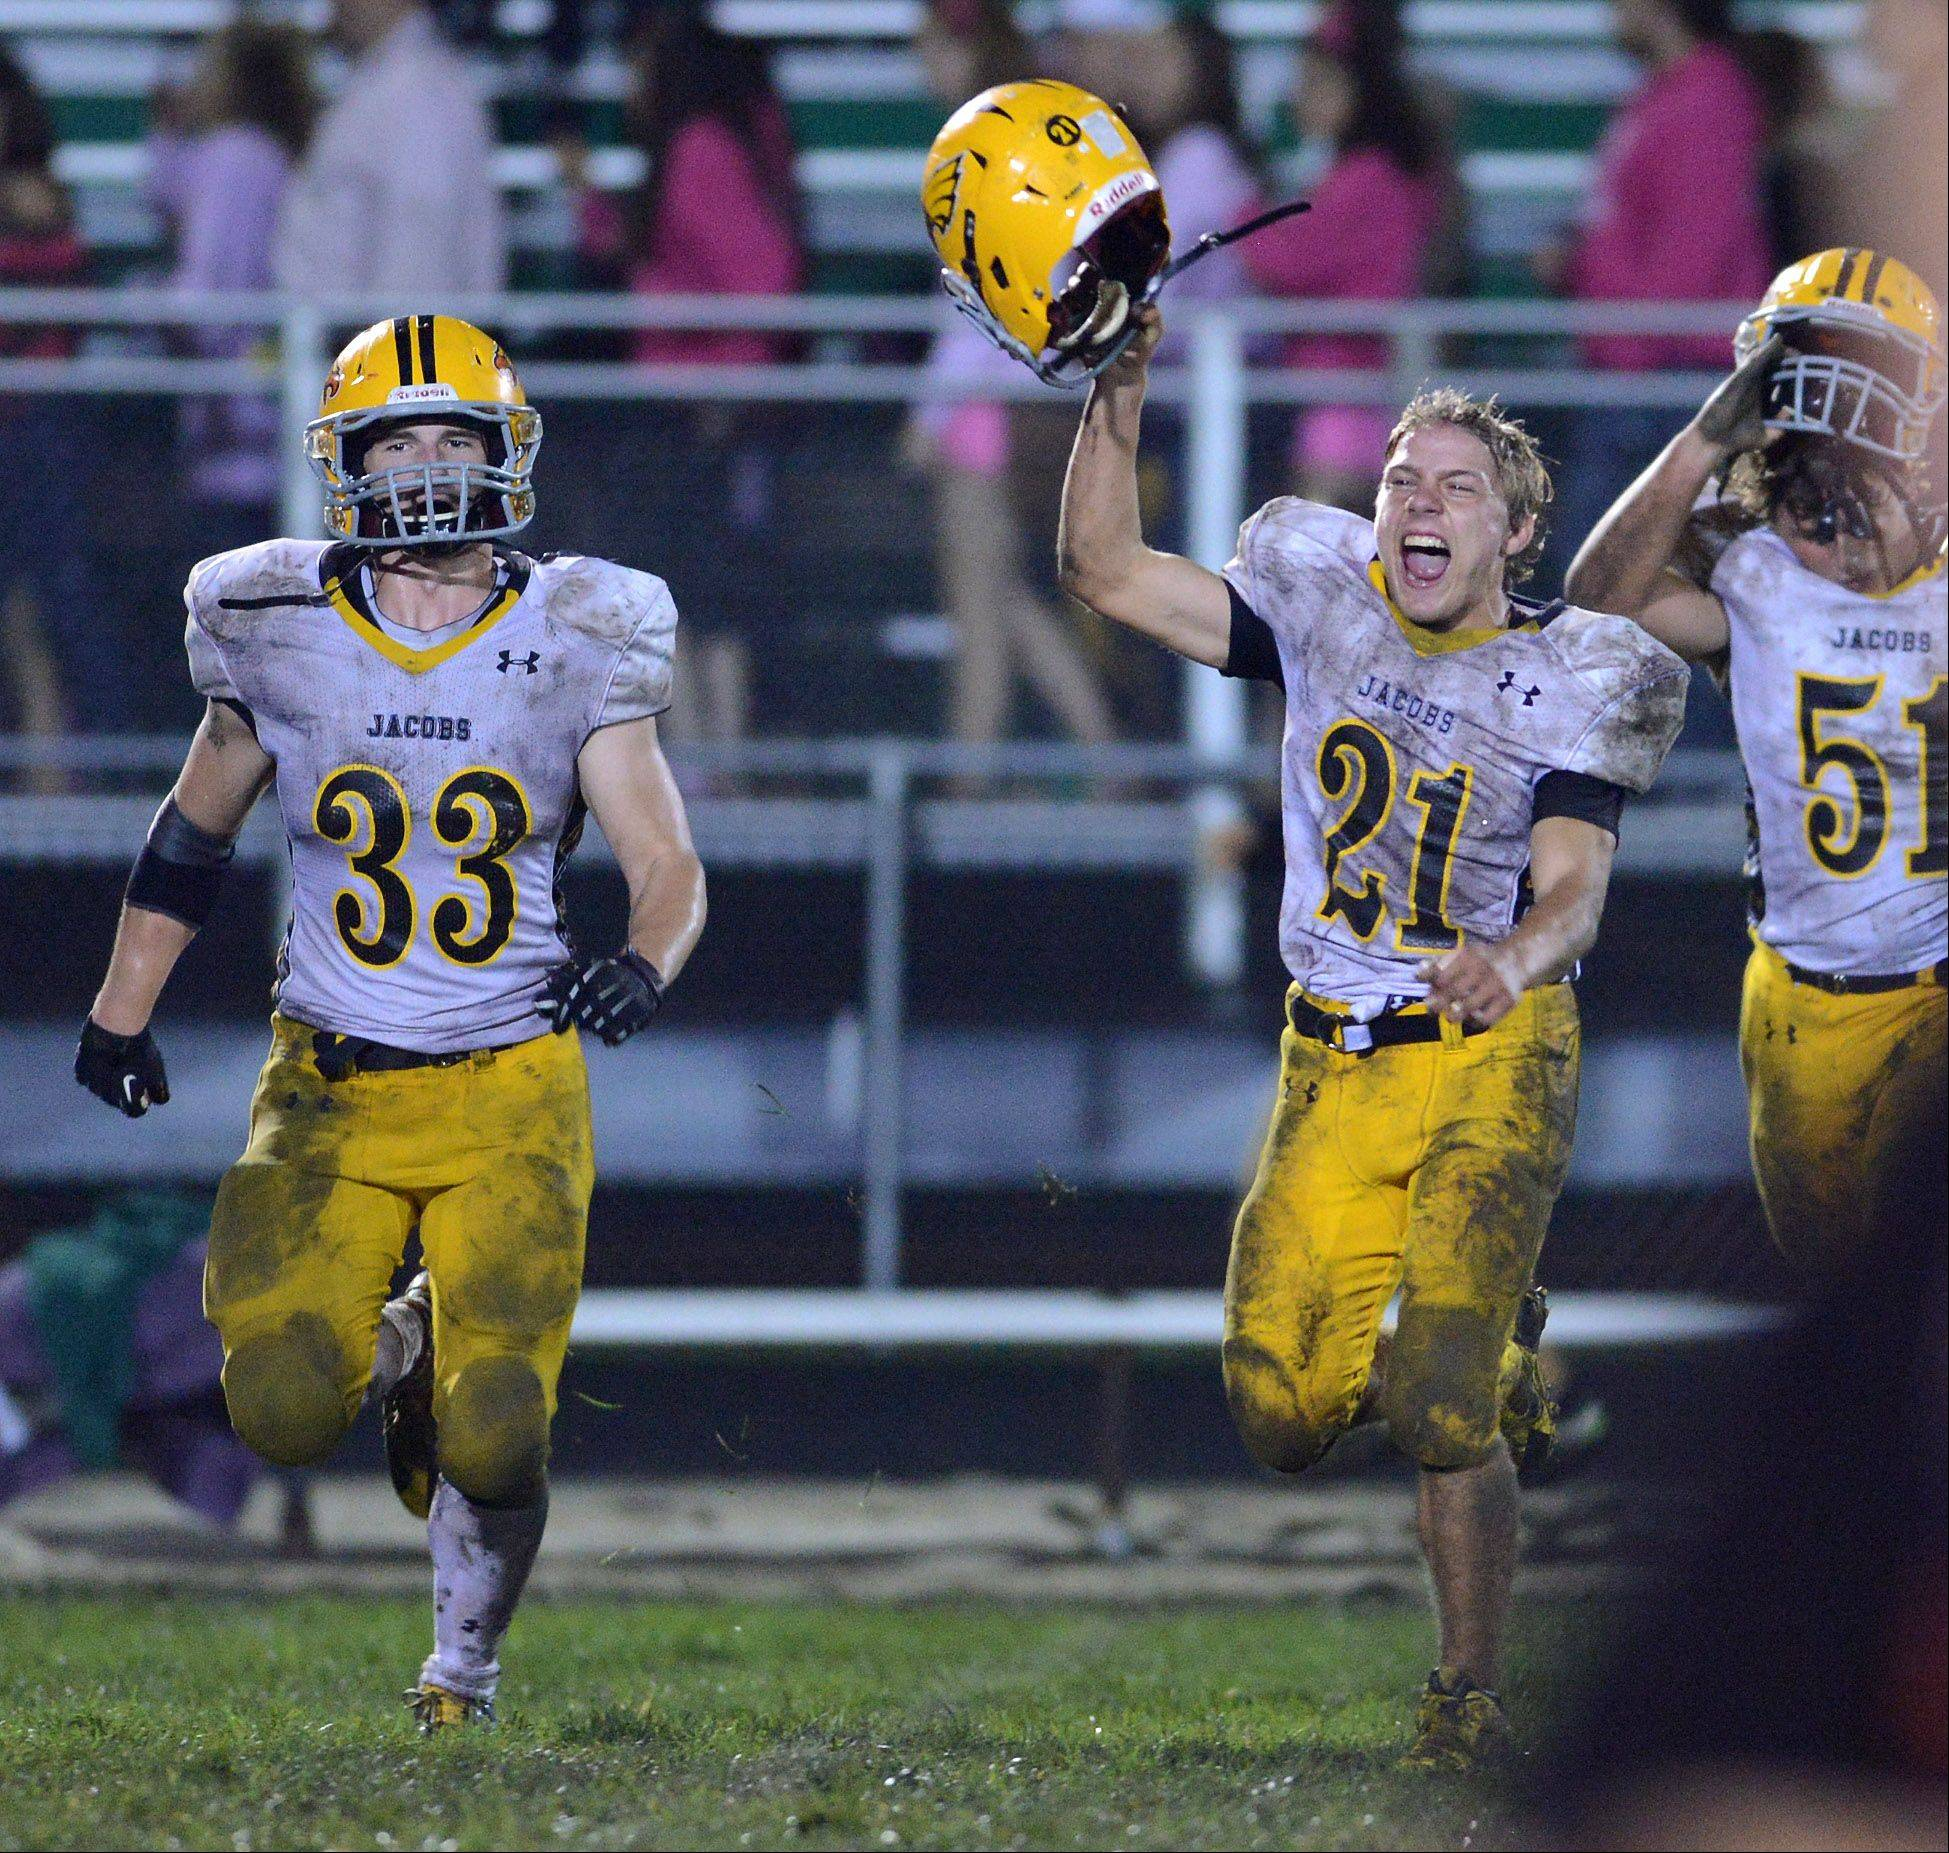 Jacobs' Greg McLeod , Cody Ferencz and Jeff Sidor run off the field following Friday's game in Crystal Lake.